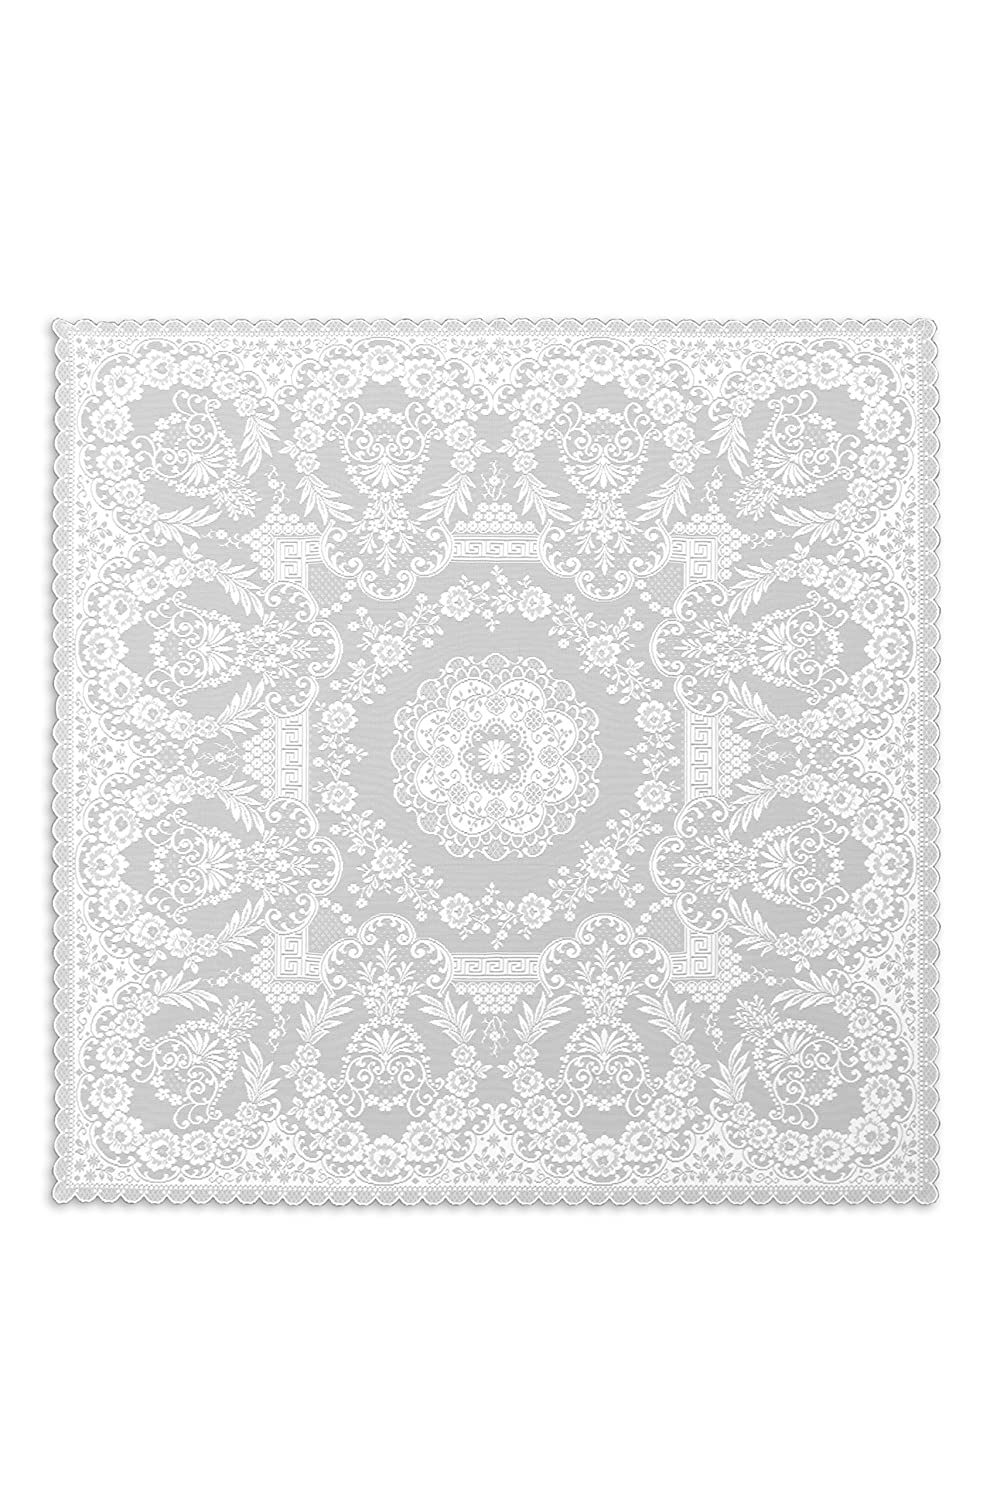 White Downton Abbey Lace Grantham Table Topper